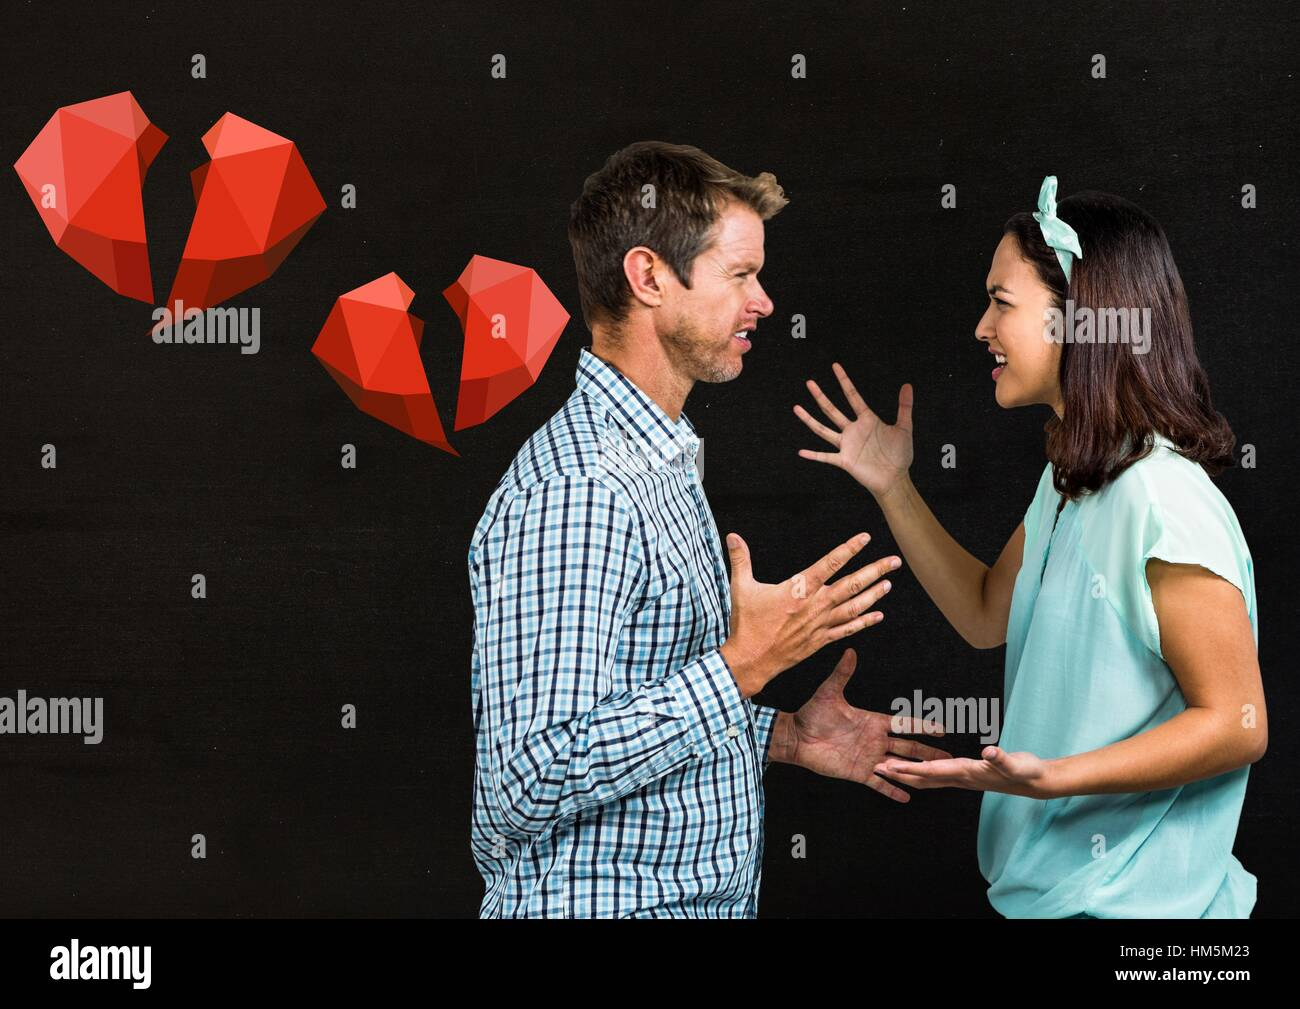 Couple arguing with each other against black background - Stock Image